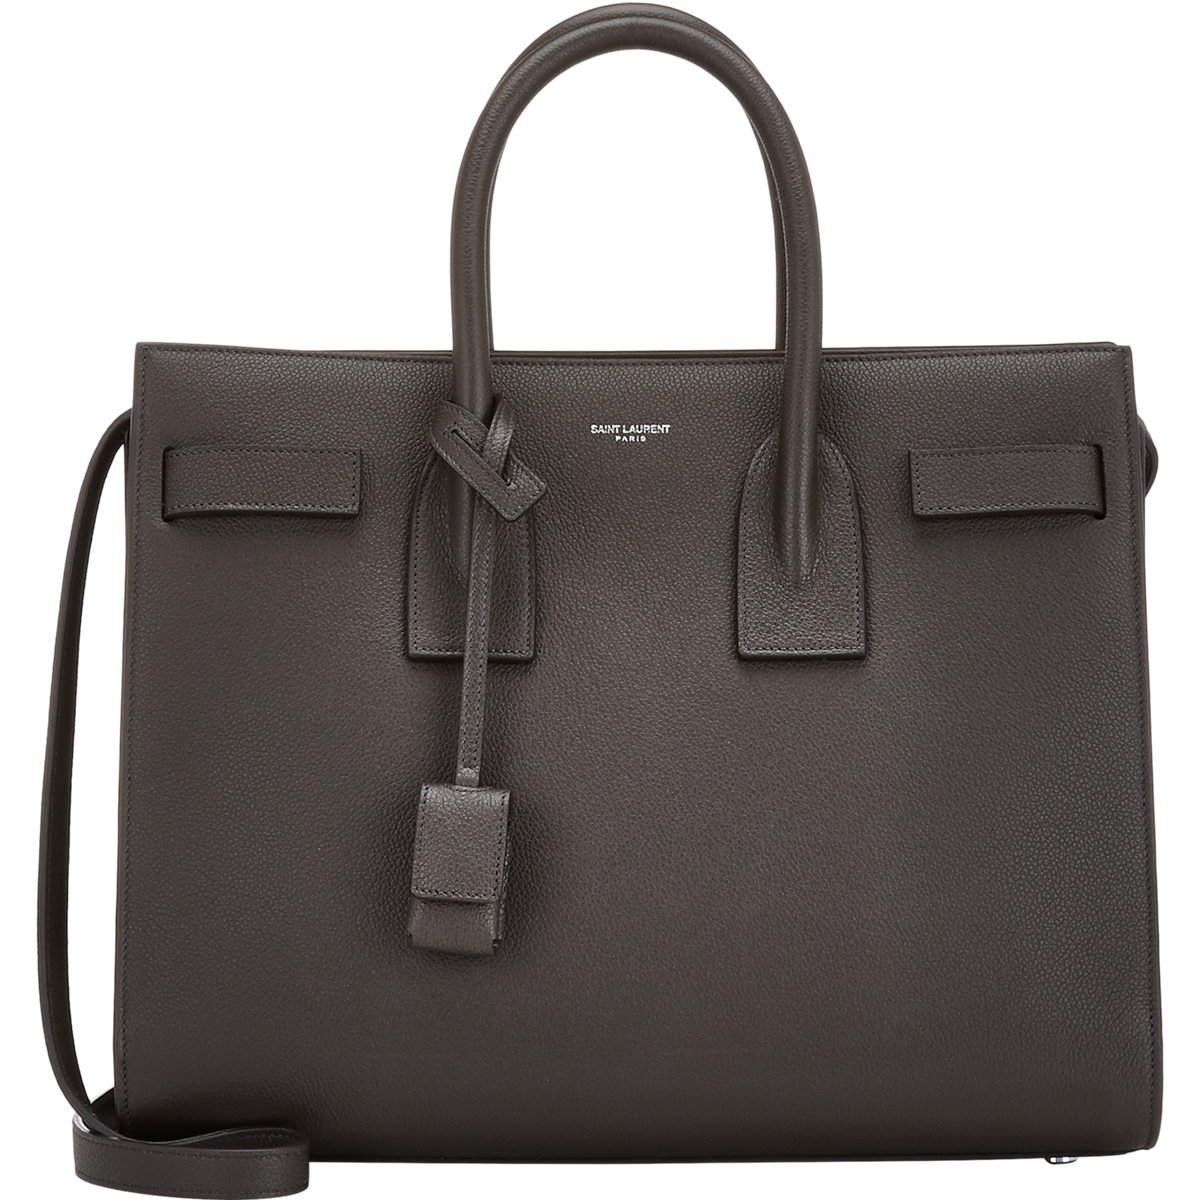 5cb31da7591 Saint Laurent Sac De Jour Mini | Mount Mercy University